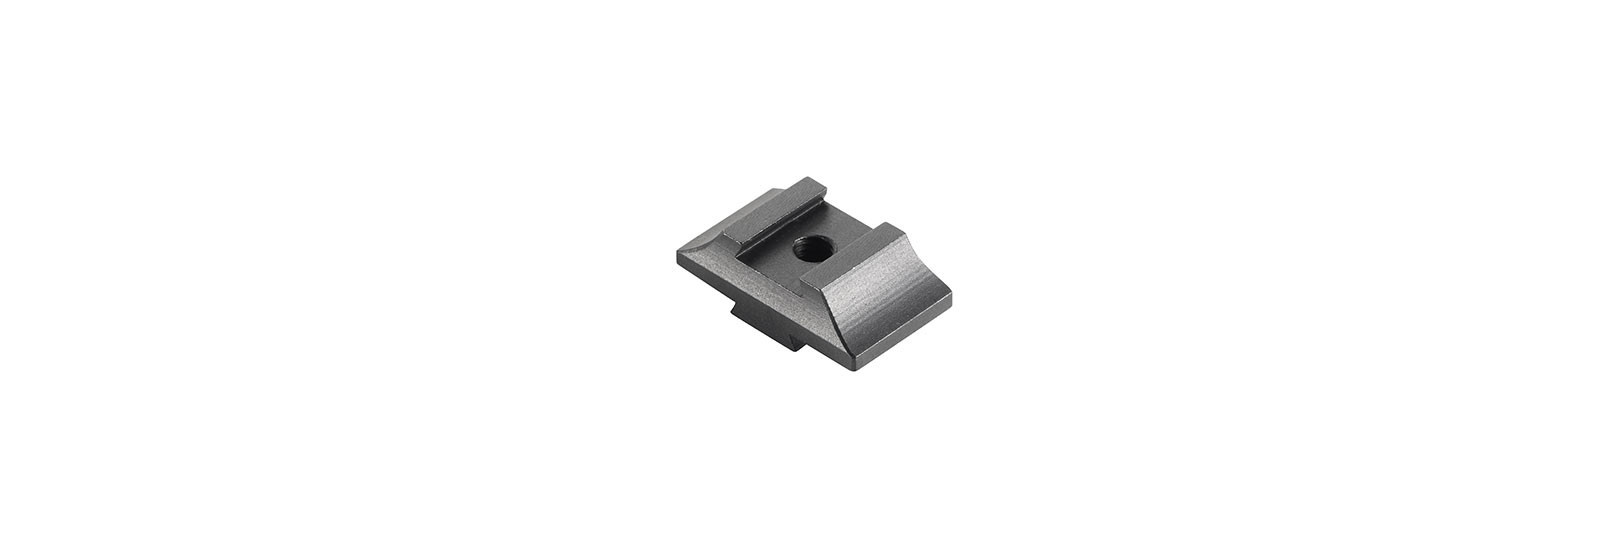 Tunnel sight base support